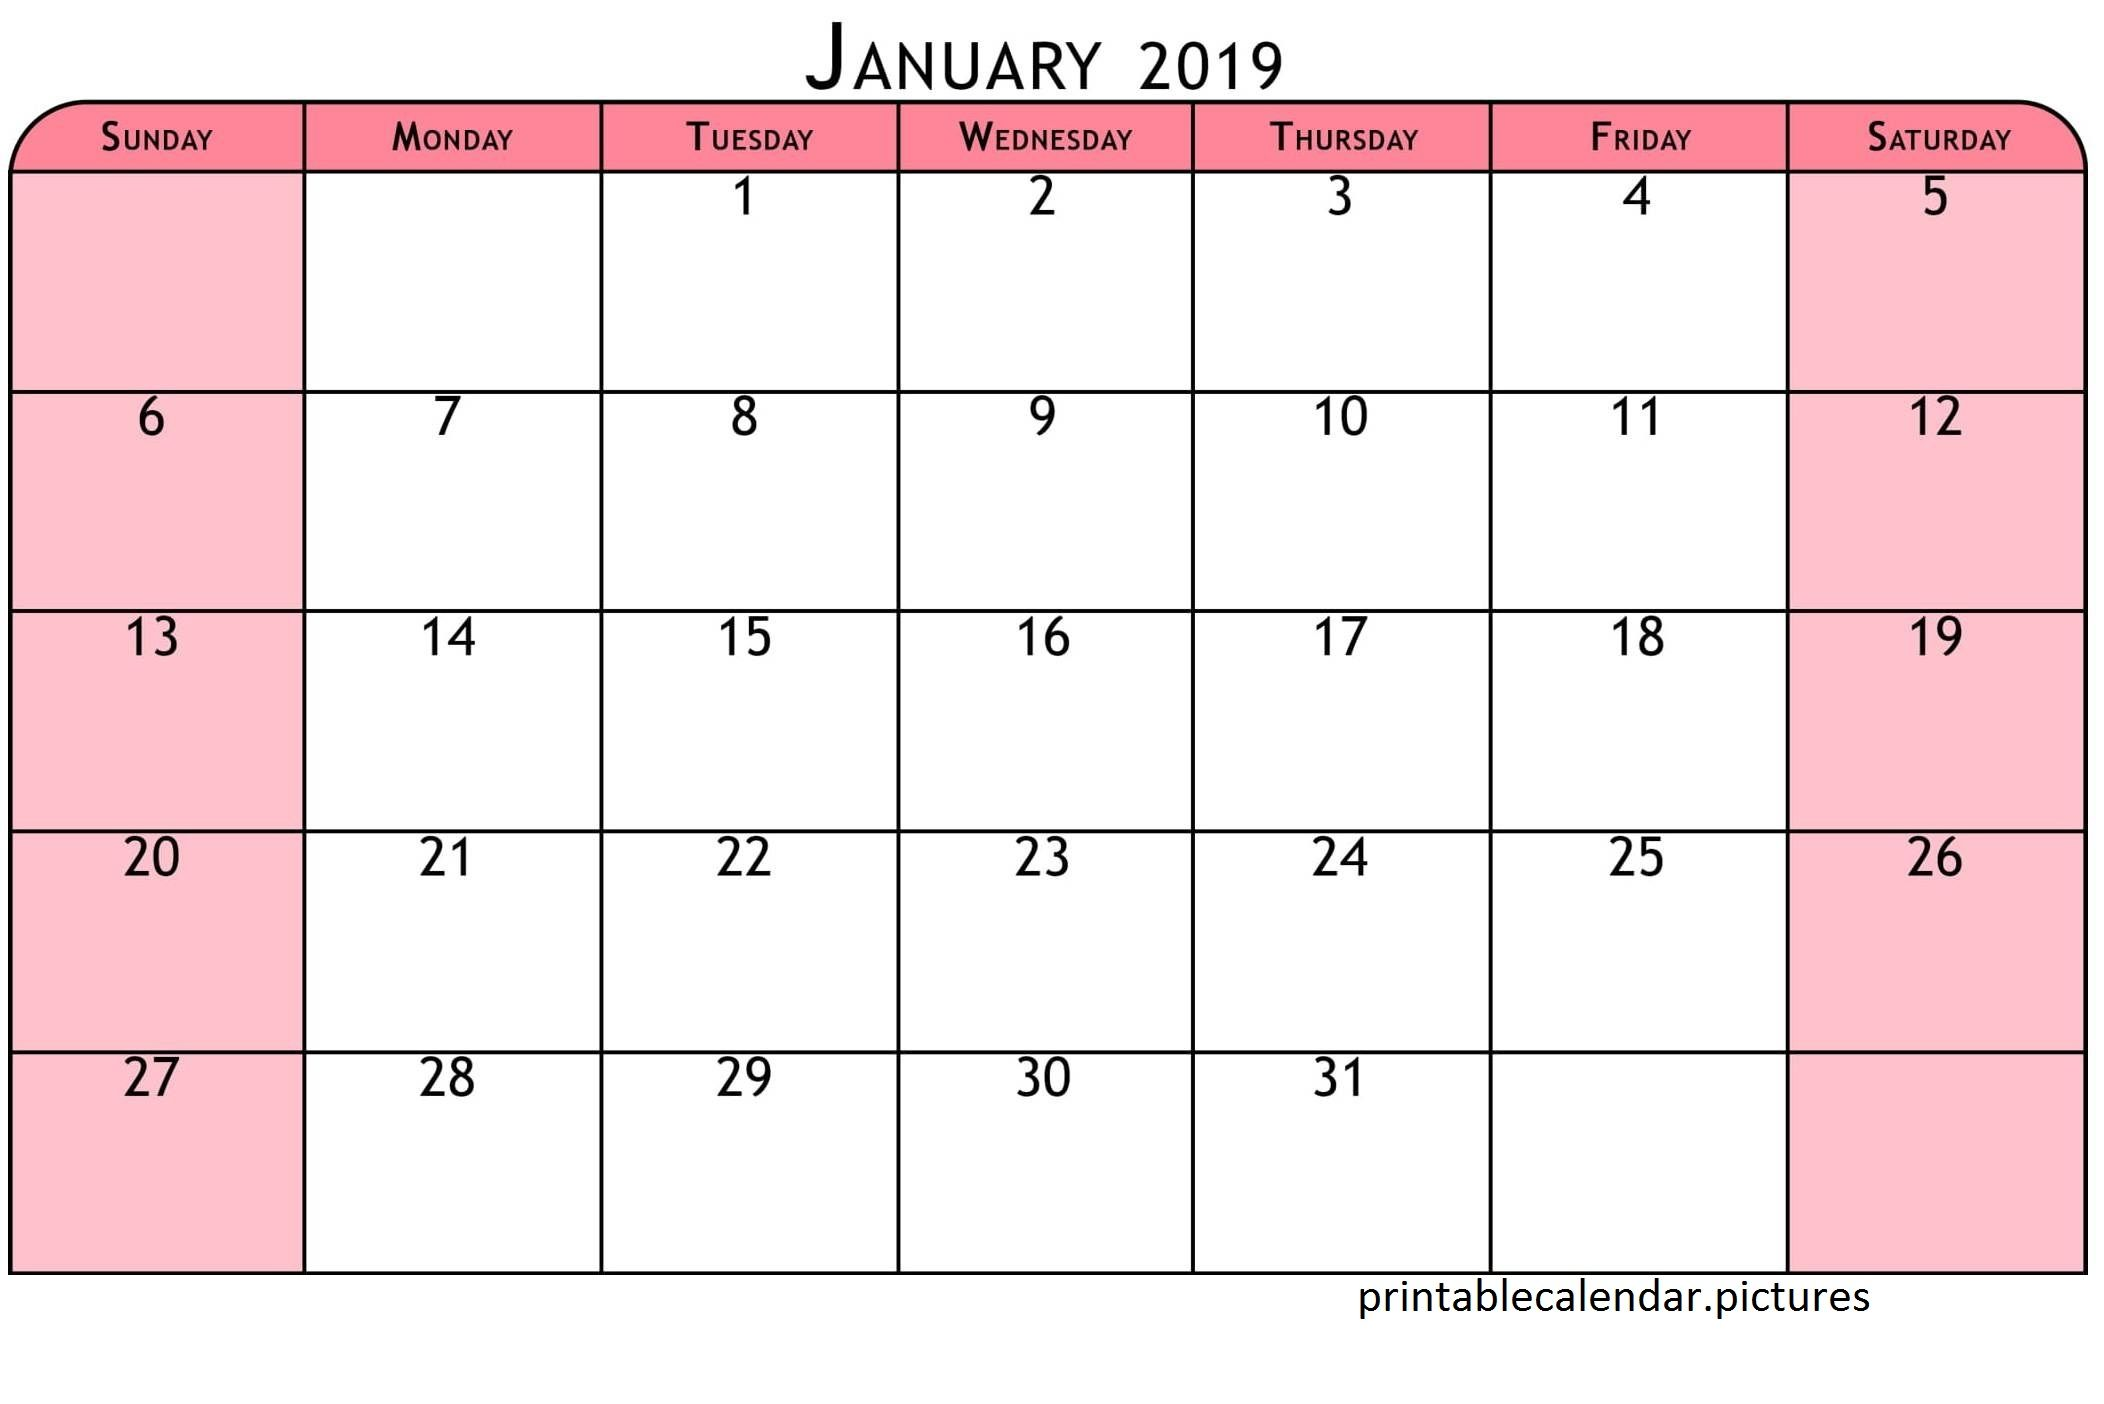 Colorful January 2019 Calendar Printable colorful Calendar January 2019 | Printable Calendar